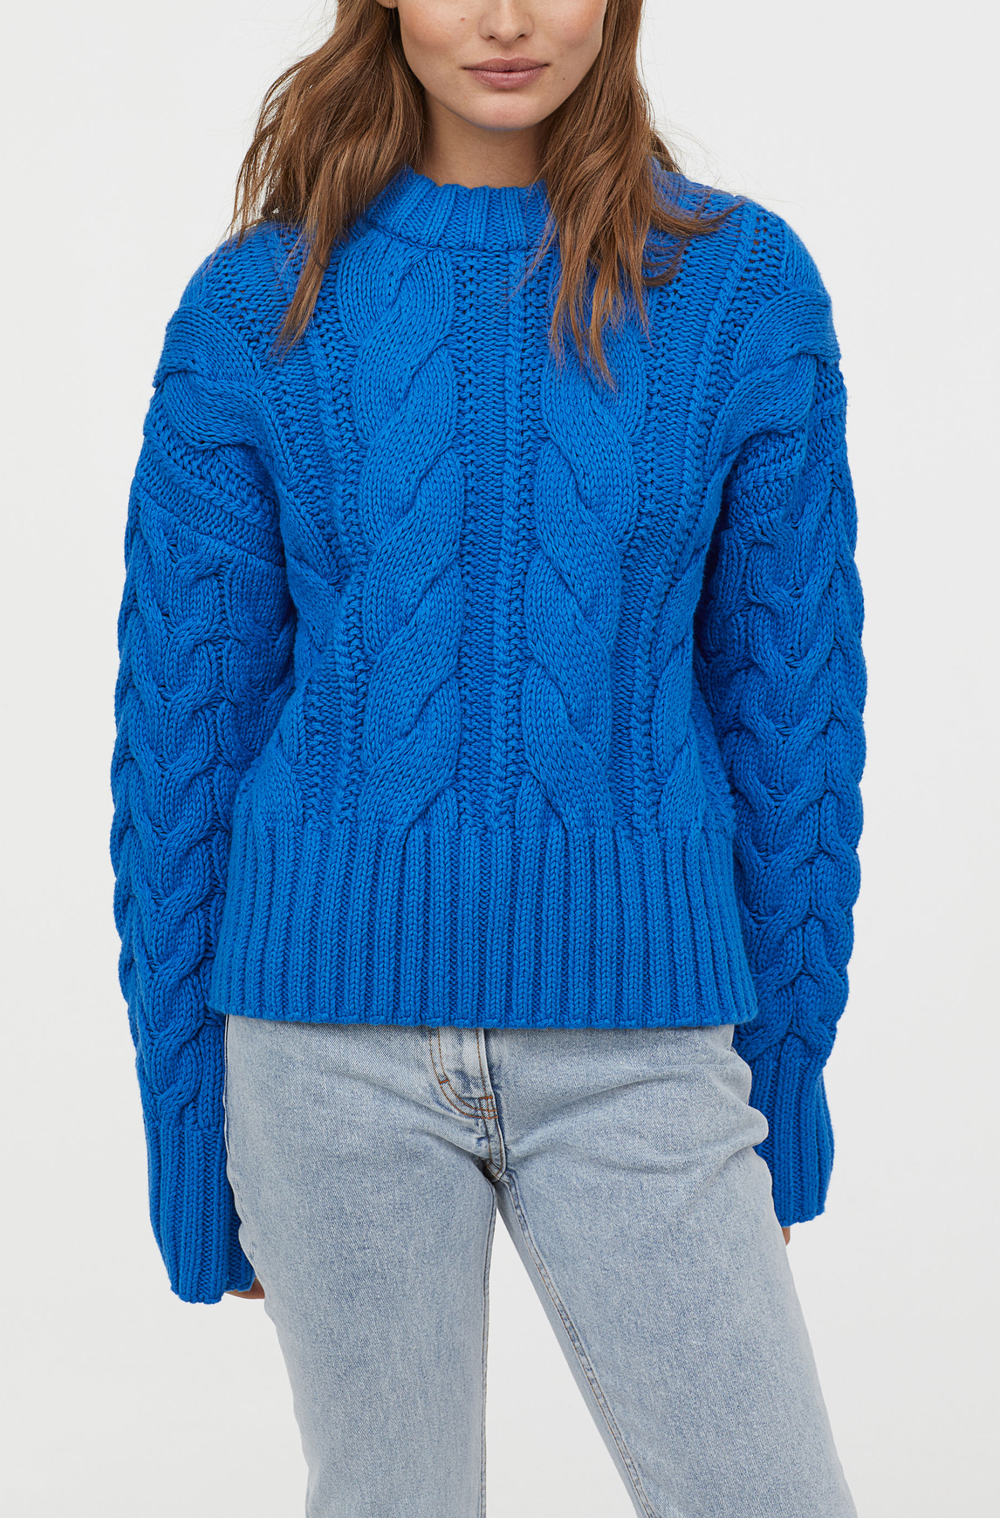 H&M Cable Knit Sweater     $49